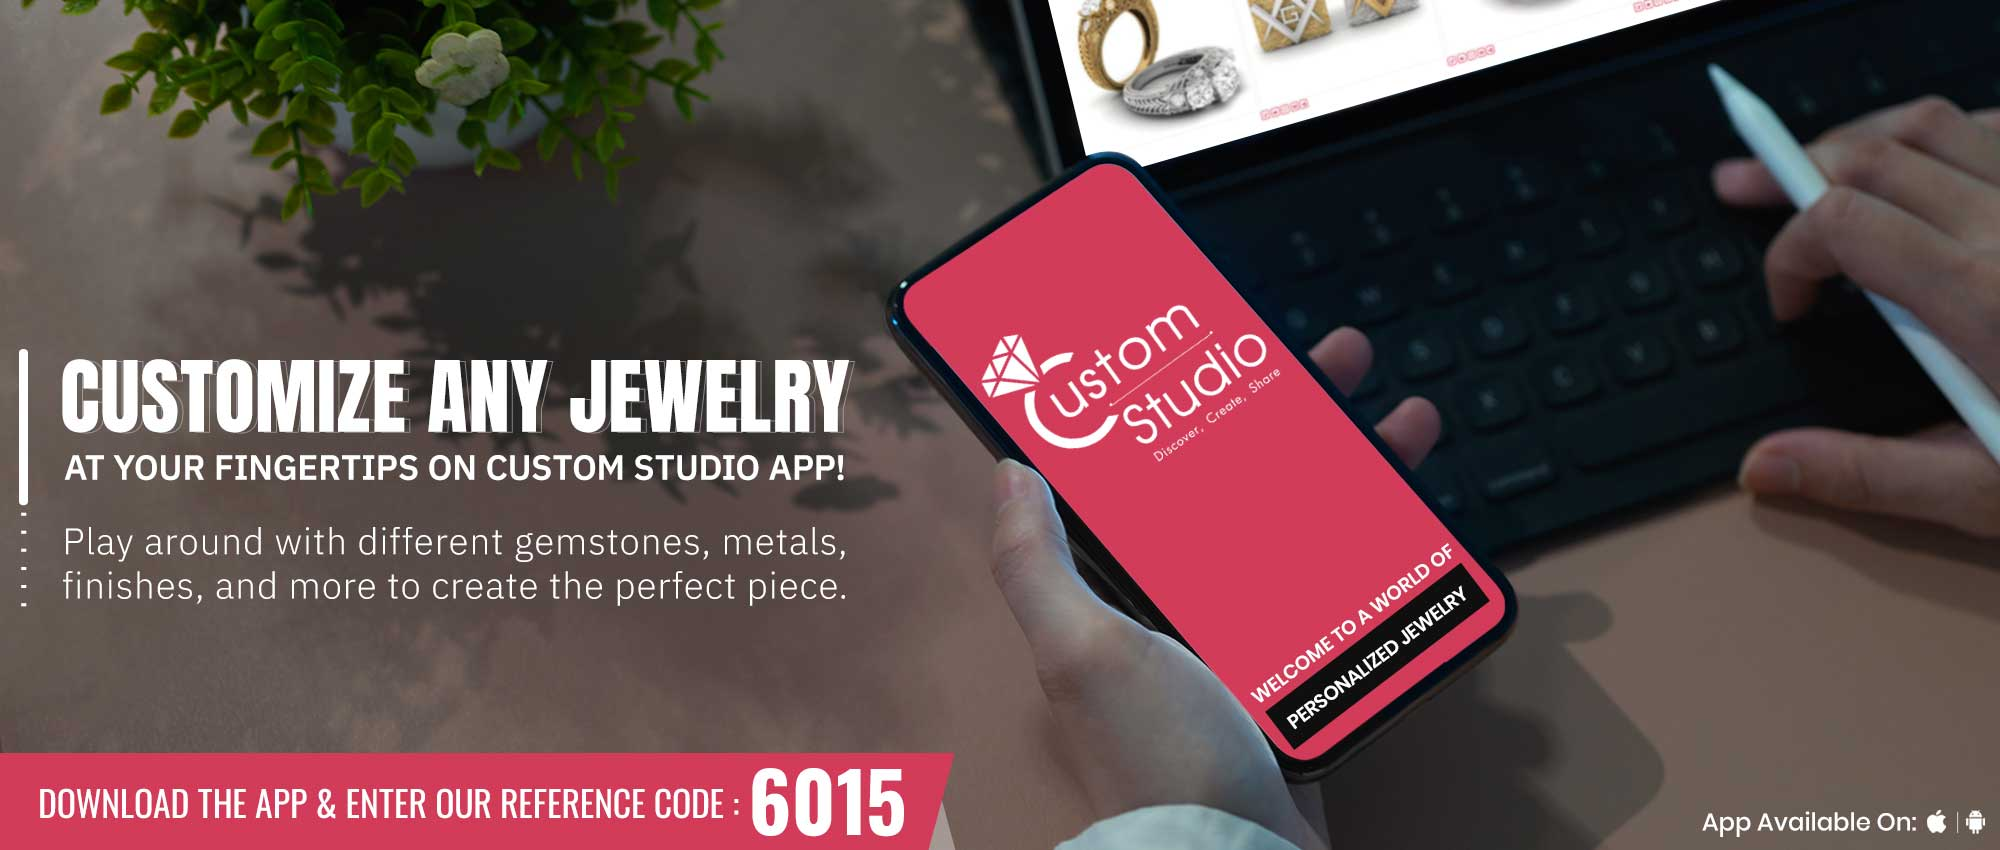 Custom Studio App Available At Midtown Jewelers At Midtown Jewelers